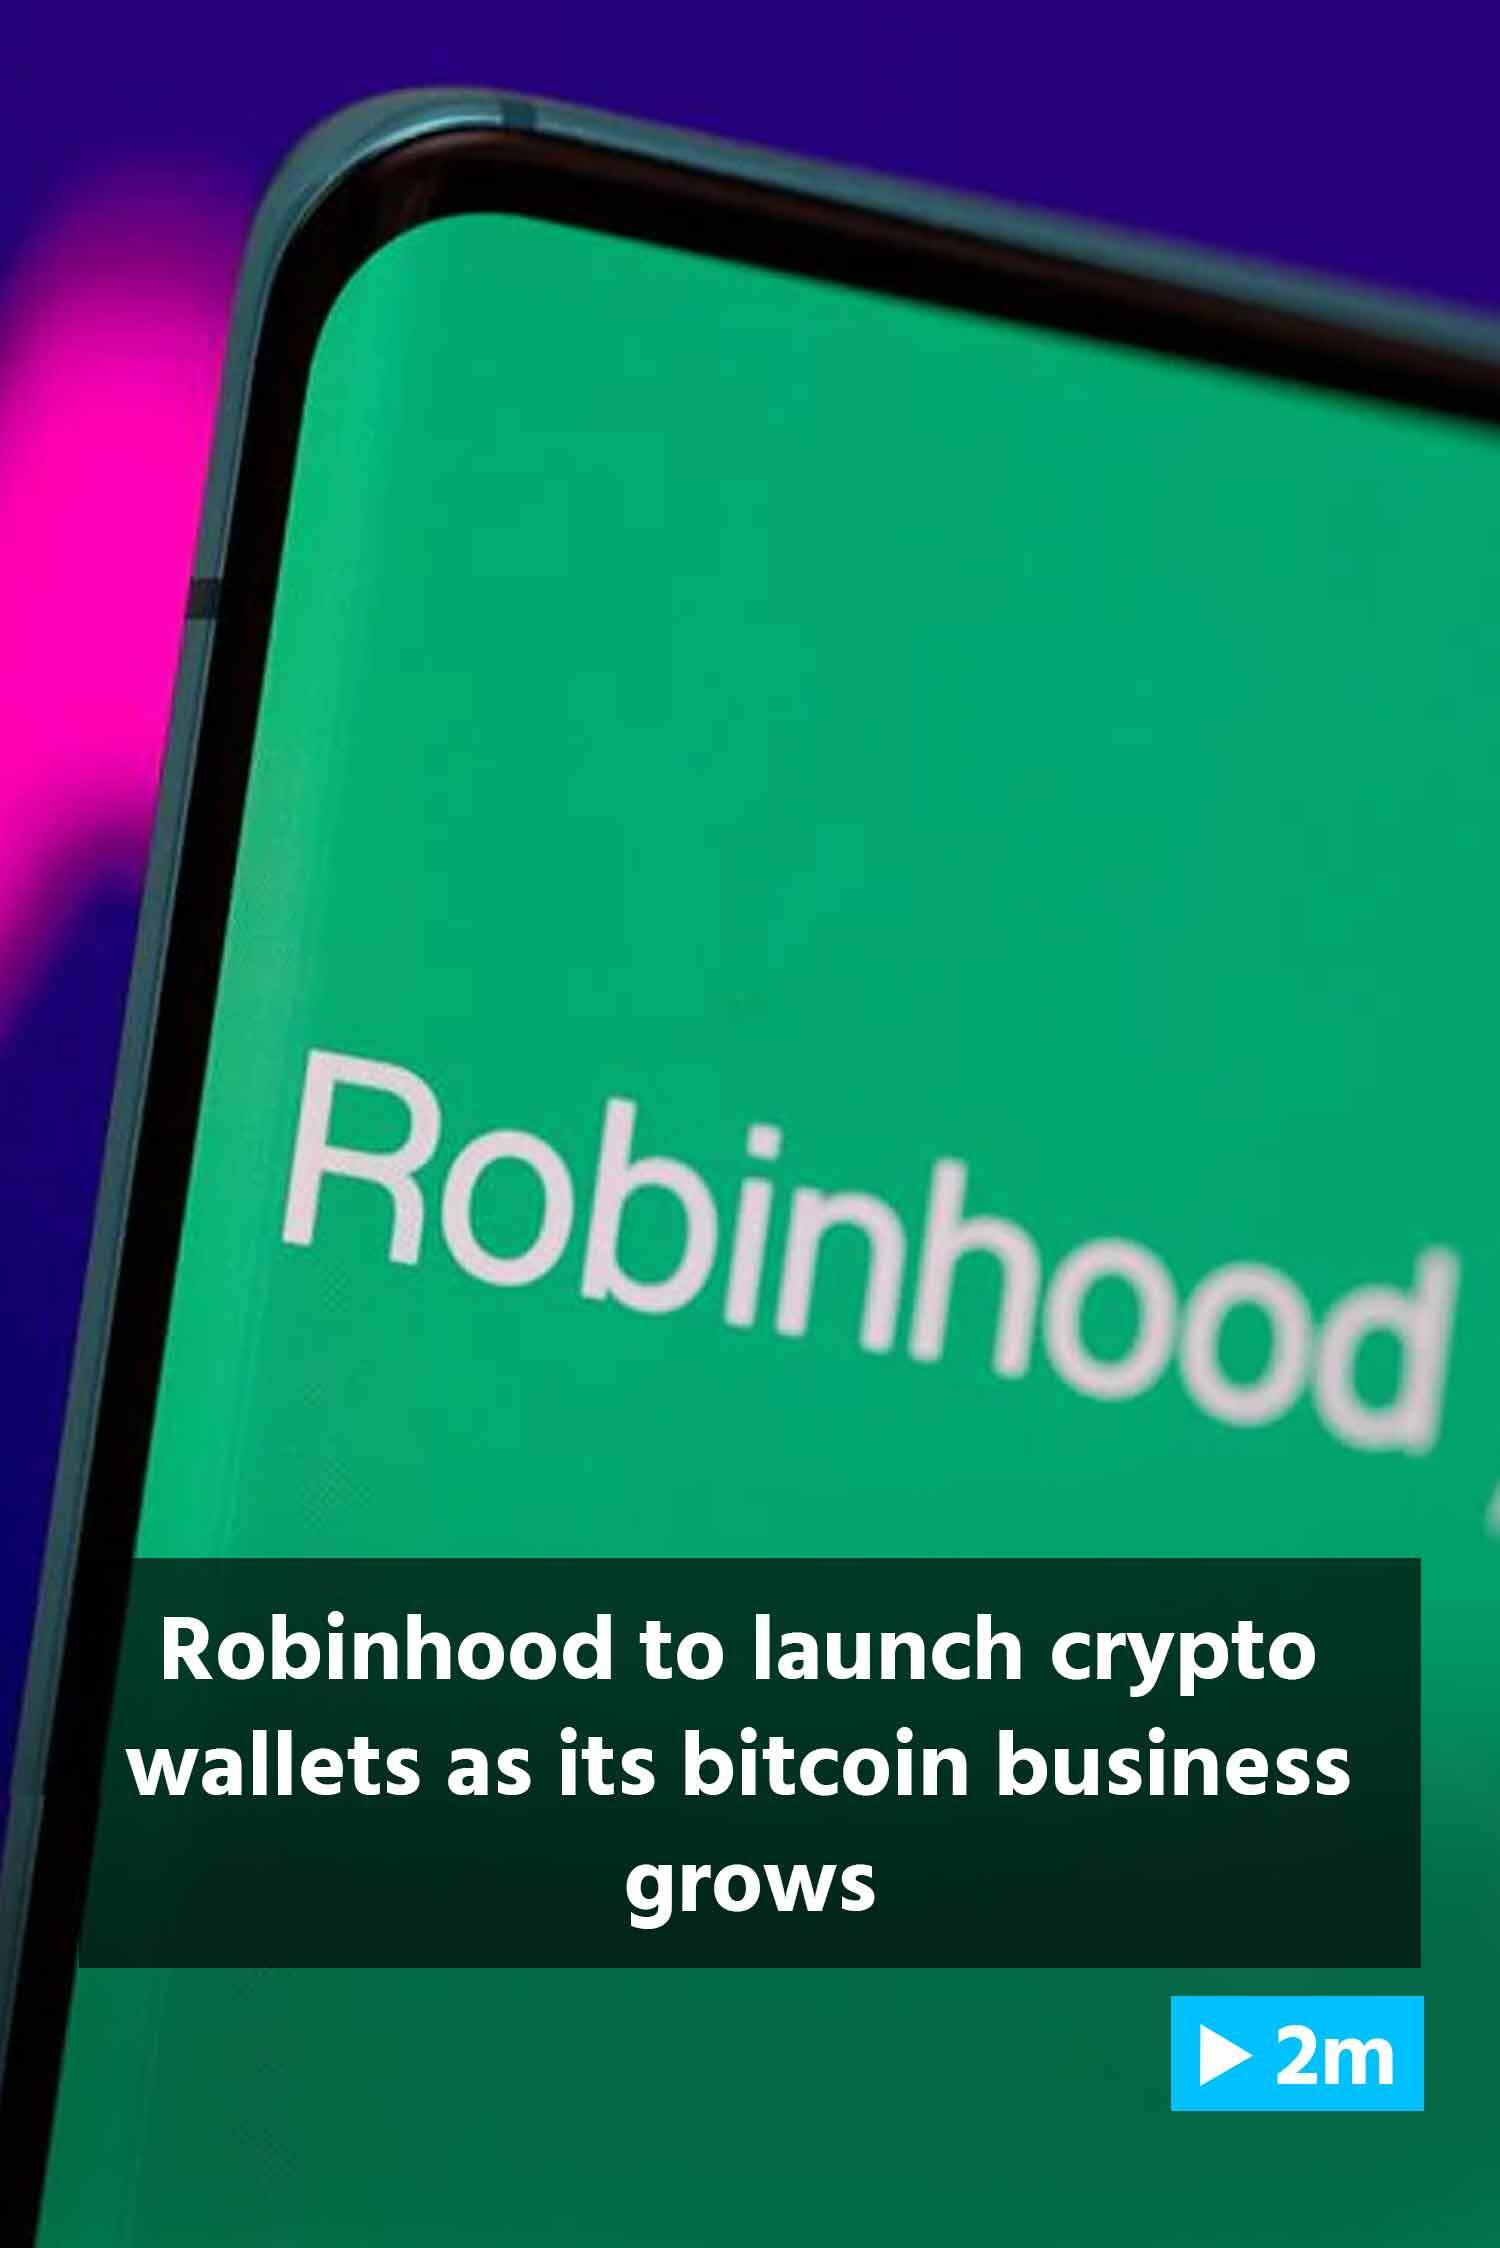 Reuters Report: Robinhood to launch crypto wallets as its bitcoin business grows